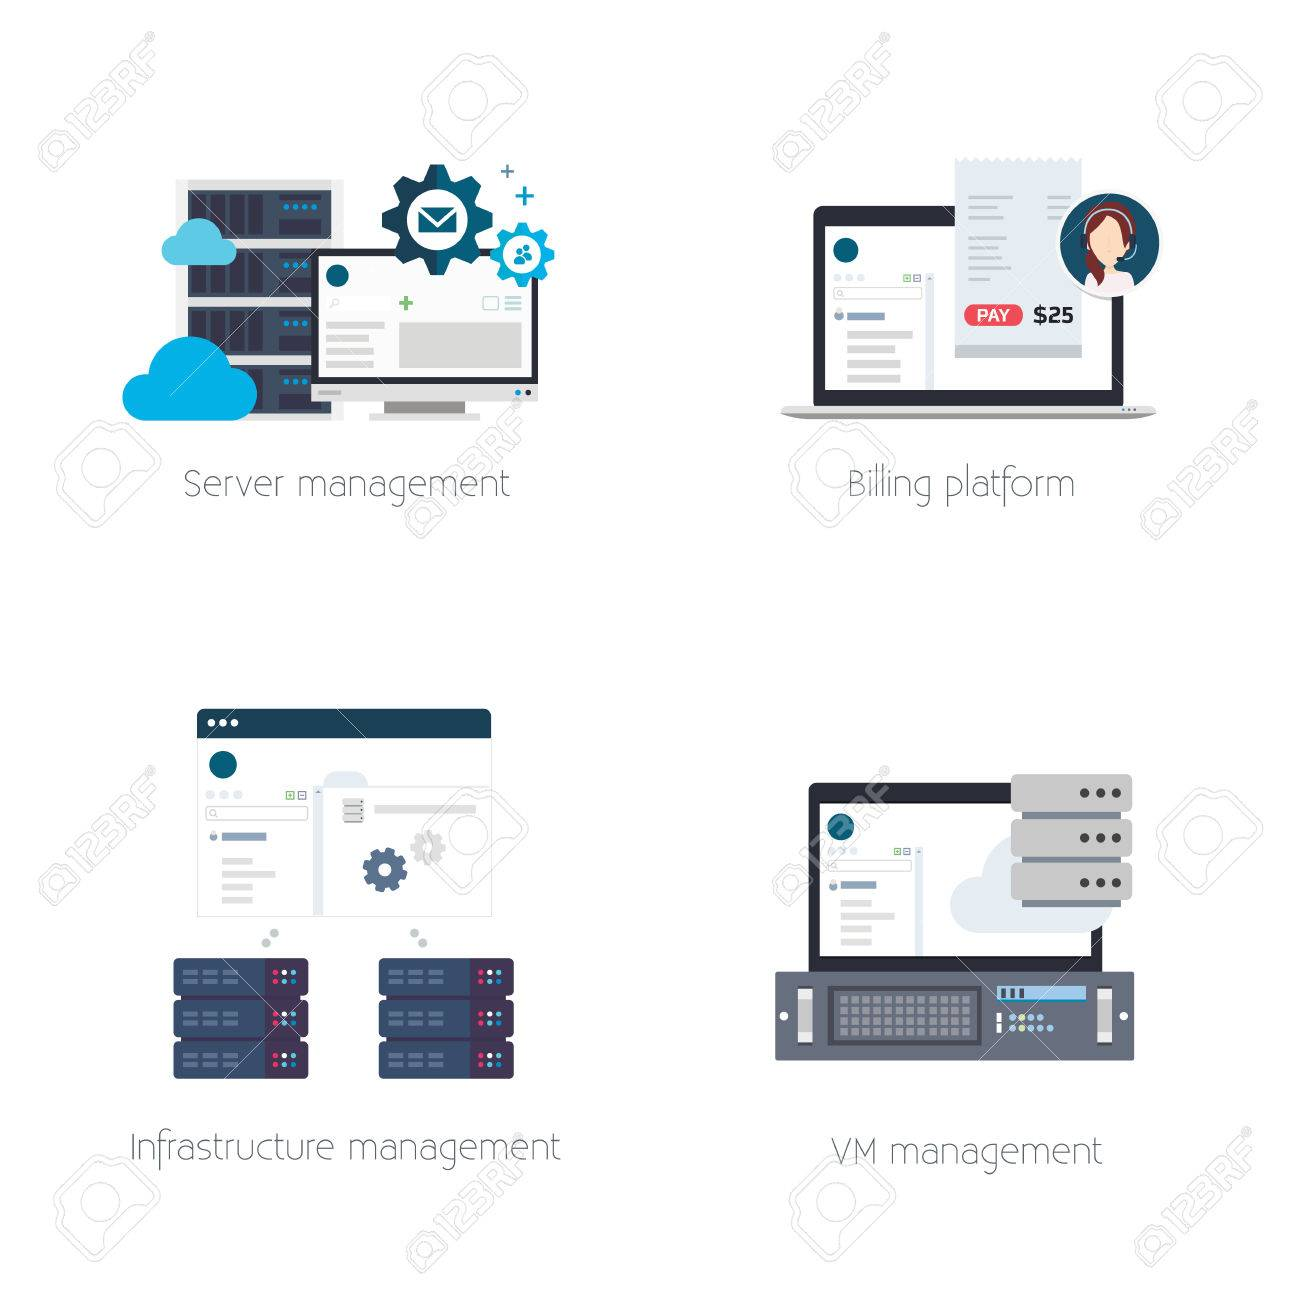 Set of Illustrations or Icons of Software Products for Hosting